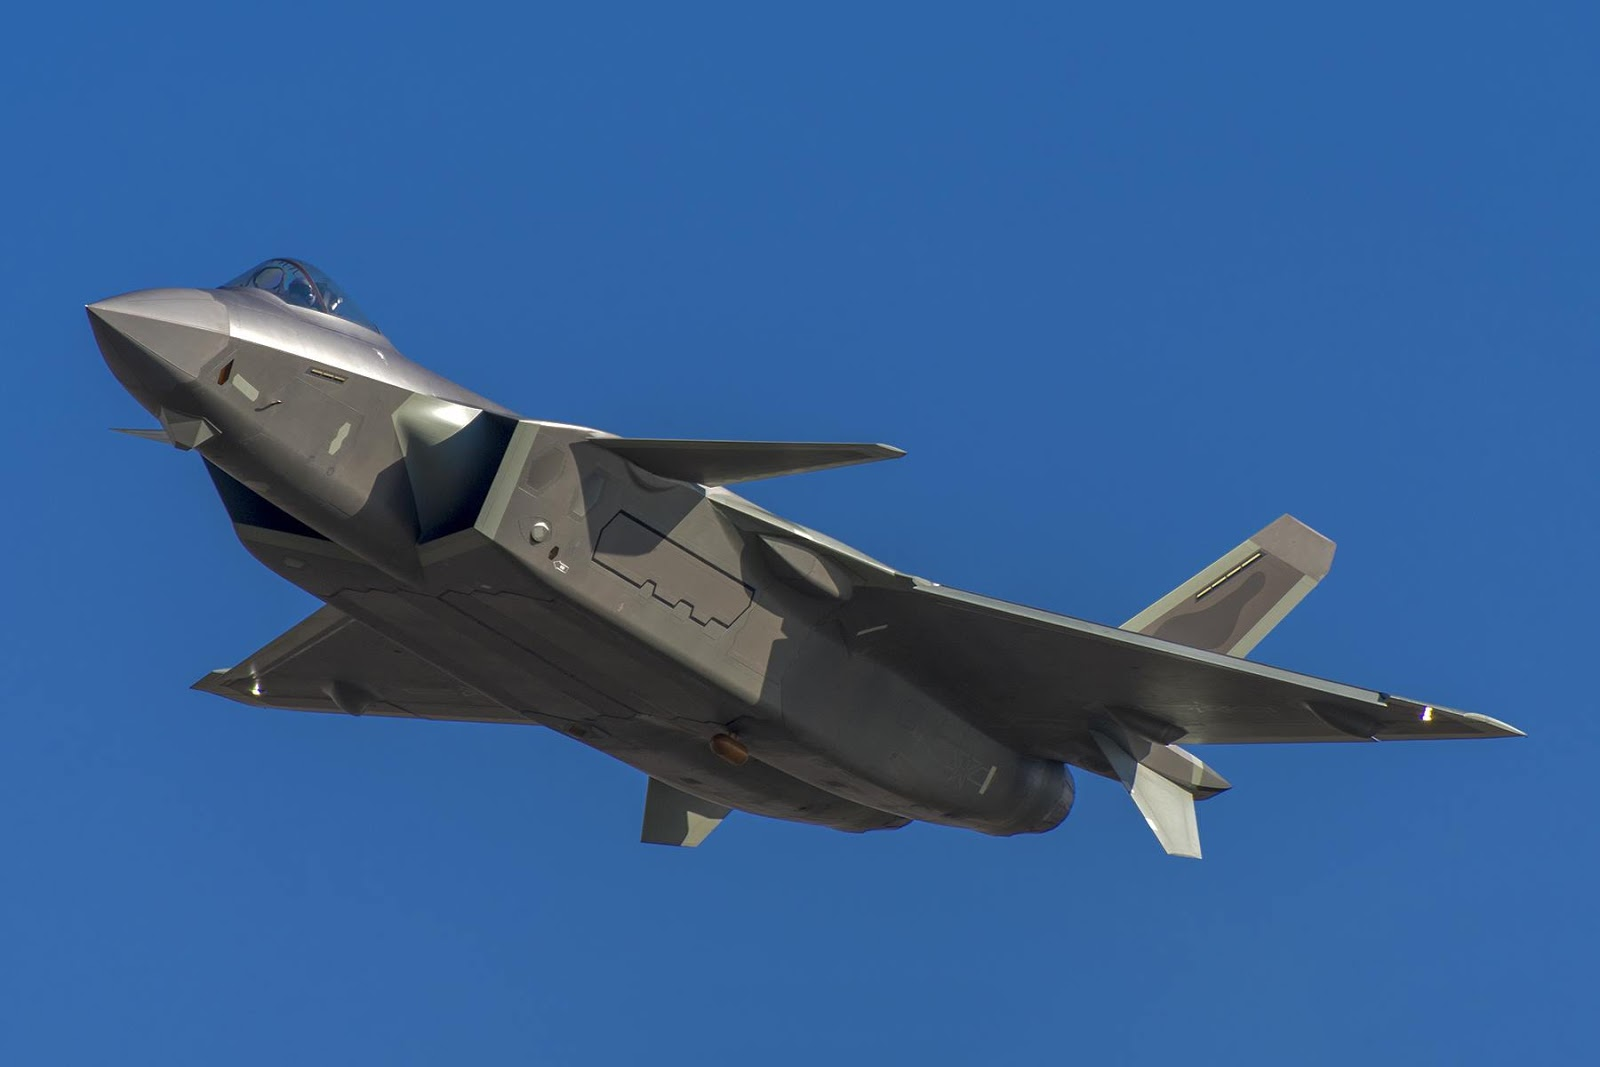 Chinese Chengdu J-20 stealth fighter - Page 7 46089486_901368786734489_3880965434014433280_o